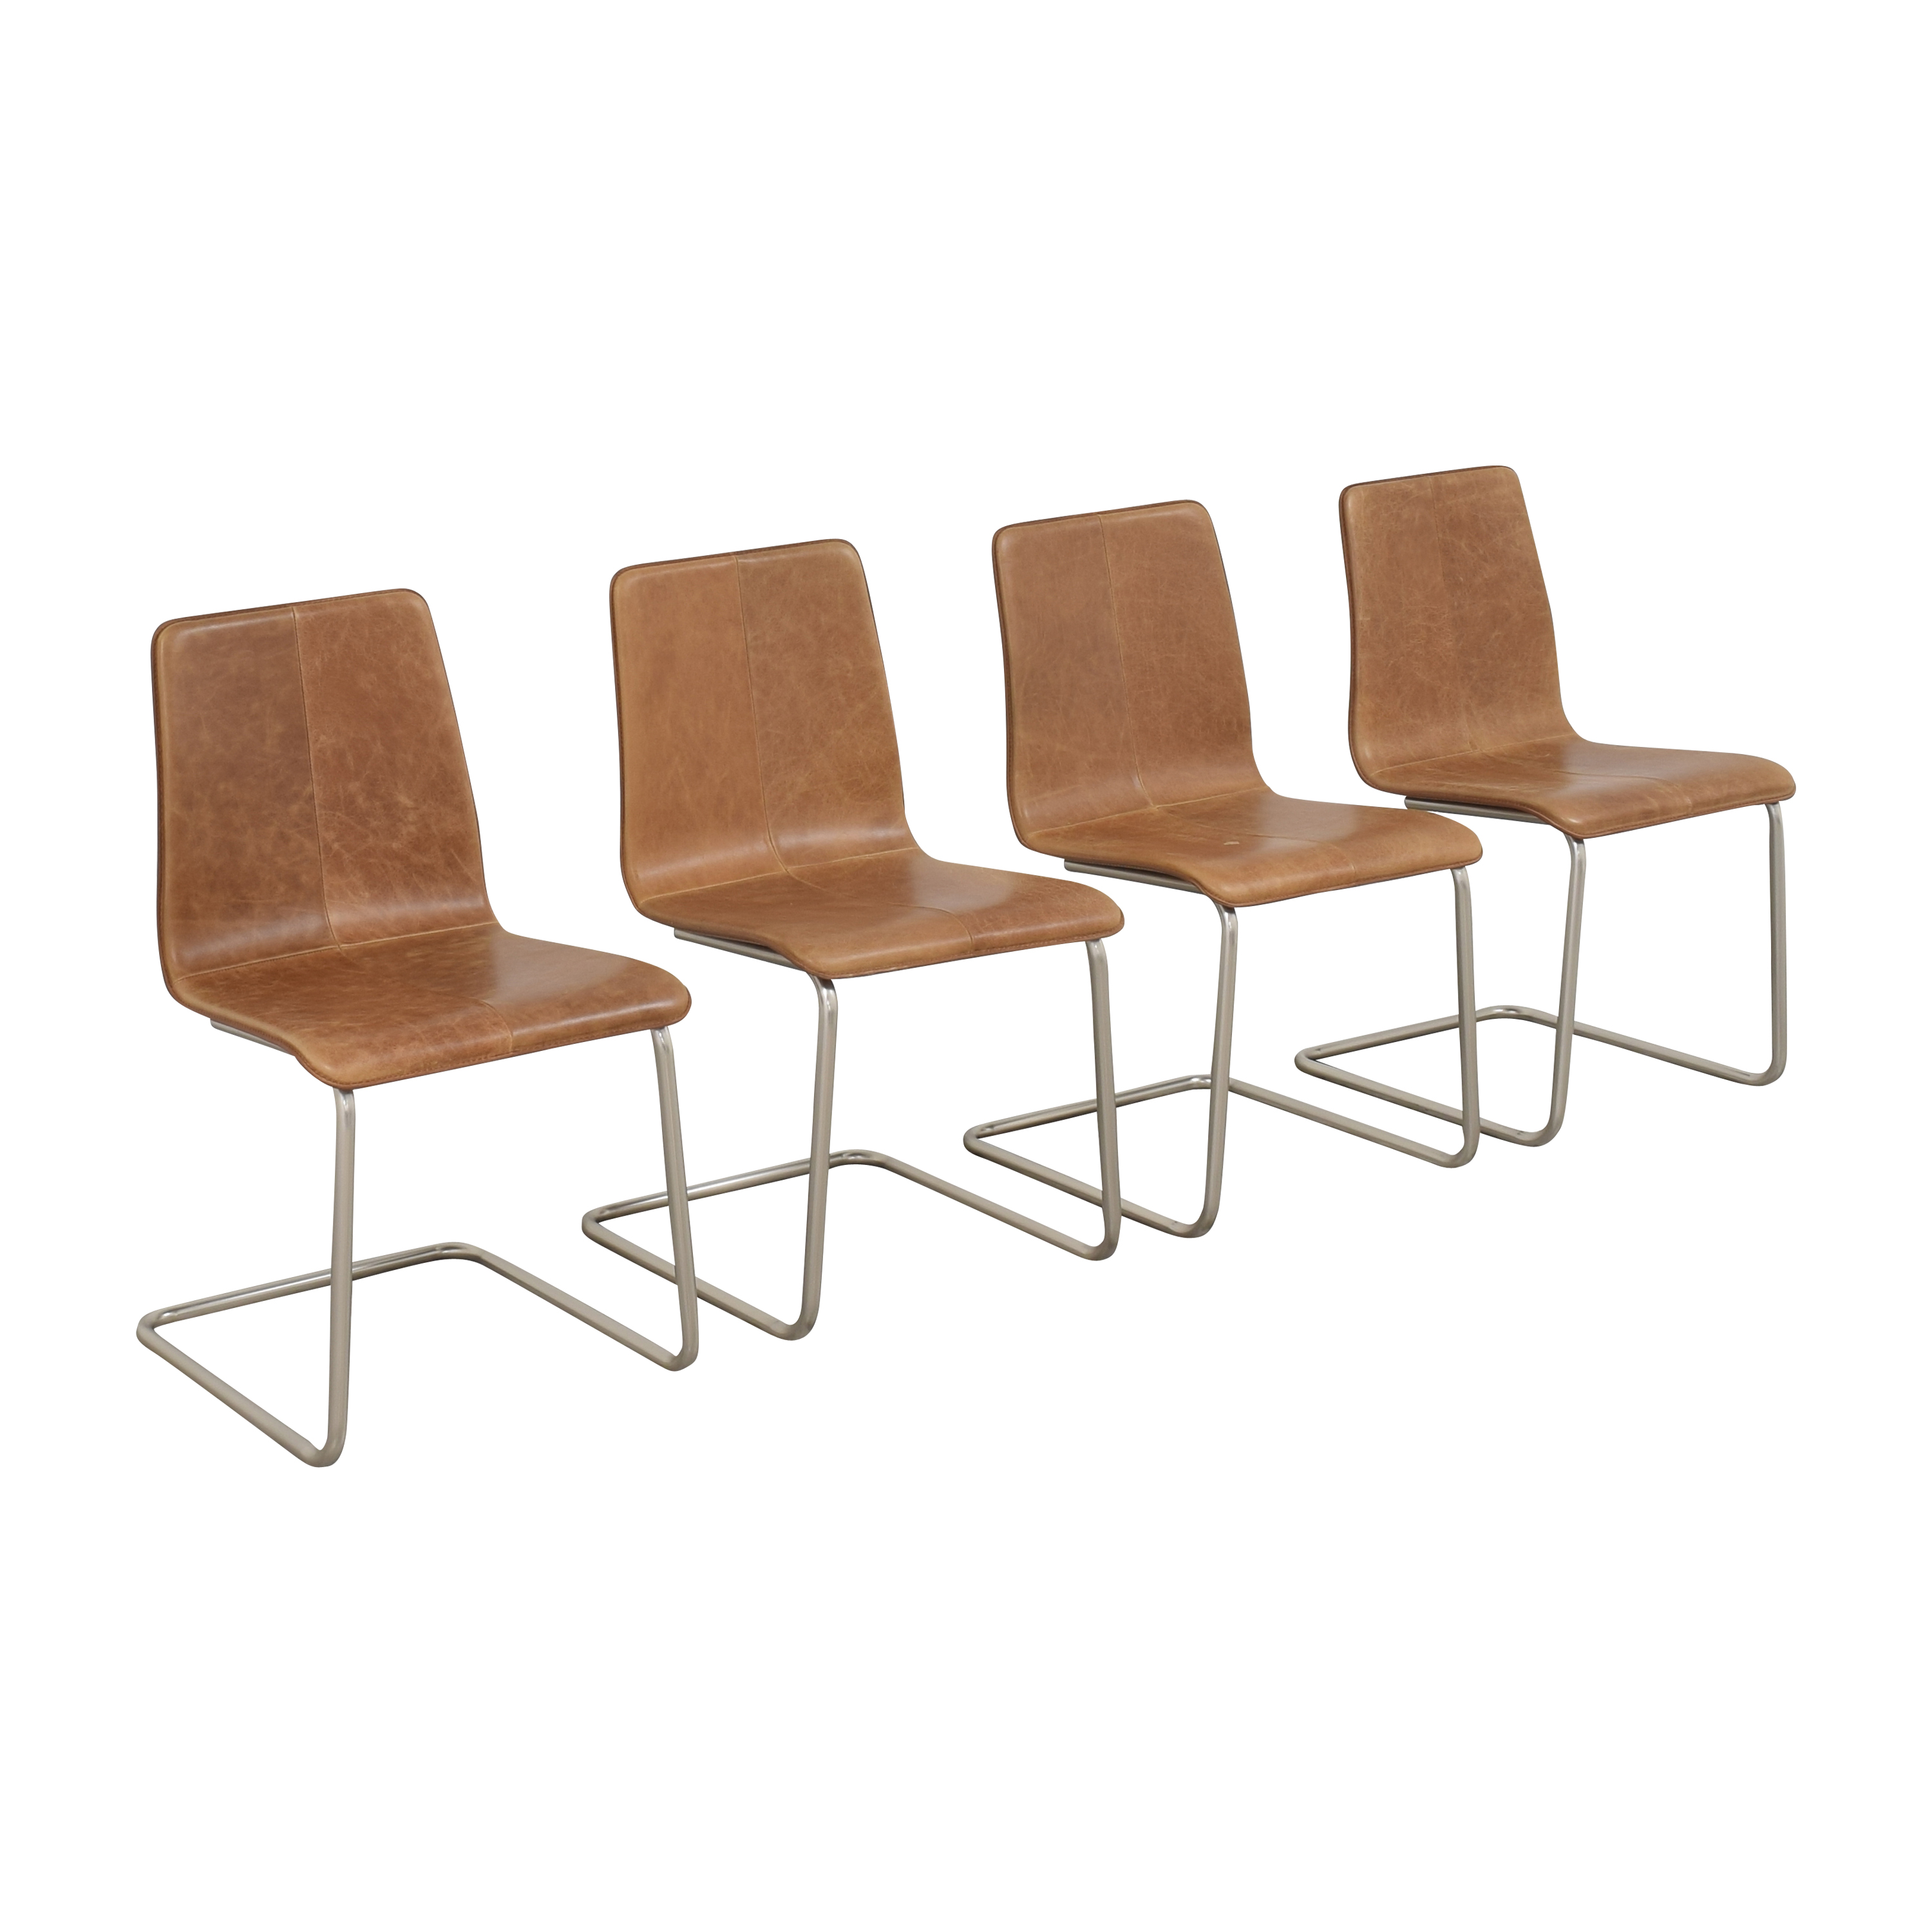 buy CB2 Pony Dining Chairs CB2 Chairs